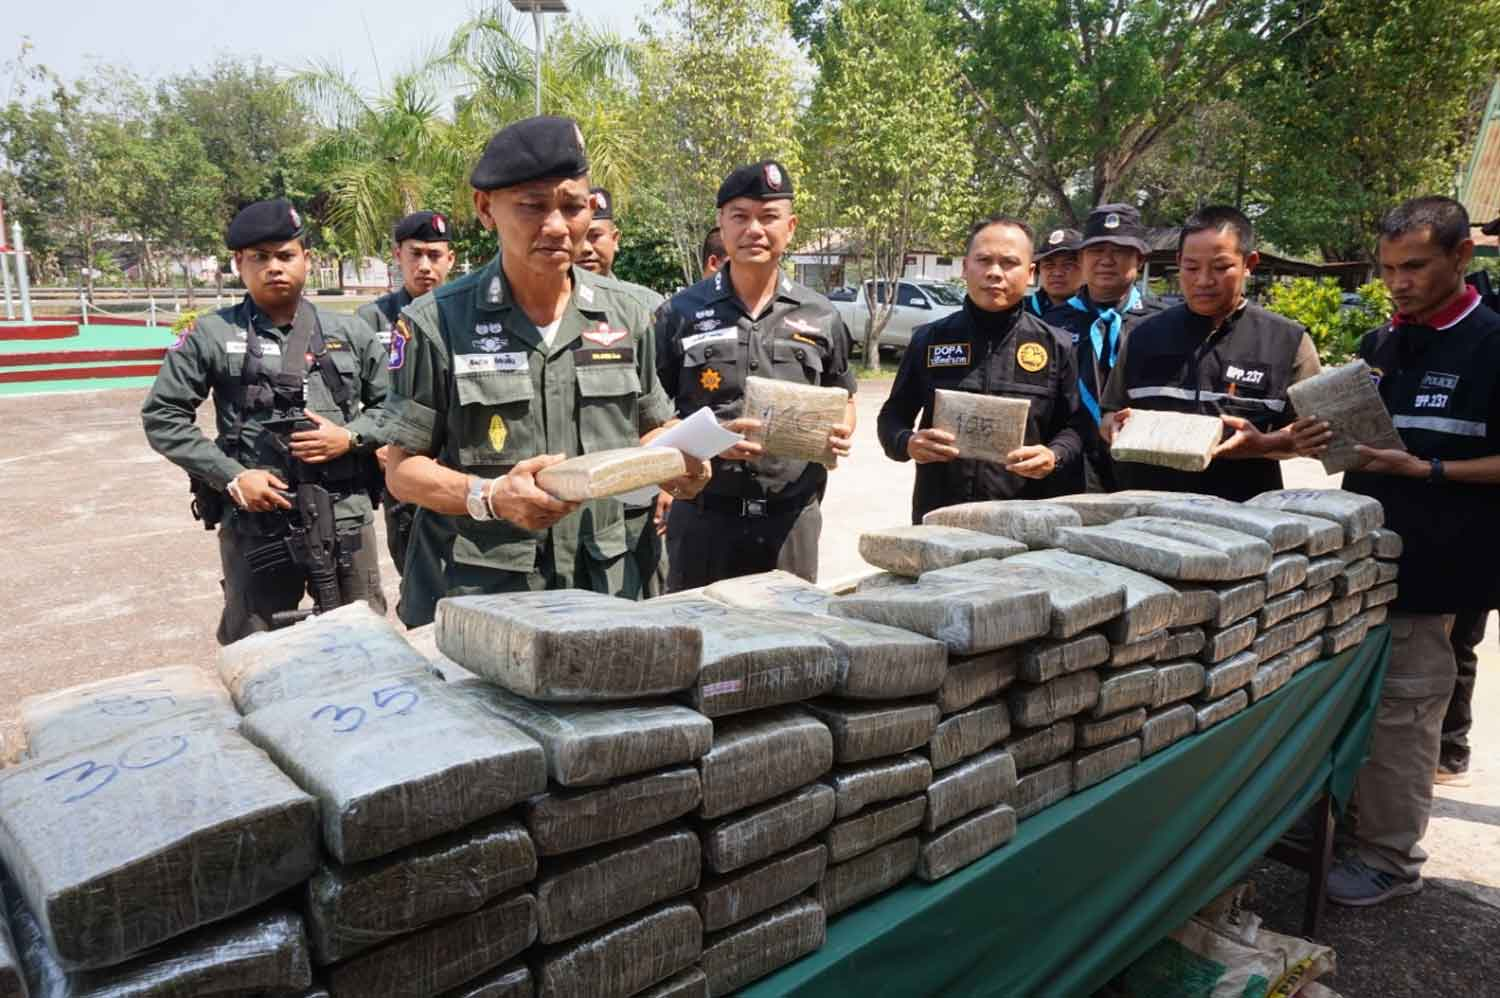 Slabs of dried marijuana, 183 kilogrammes in total, displayed at the border patrol police offices in Nakhon Phanom province. The marijuana was discovered by a BPP patrol on  the Mekong river bank in Tha Uthen district on Sunday night. (Photo: Pattanapong Sripiachai)